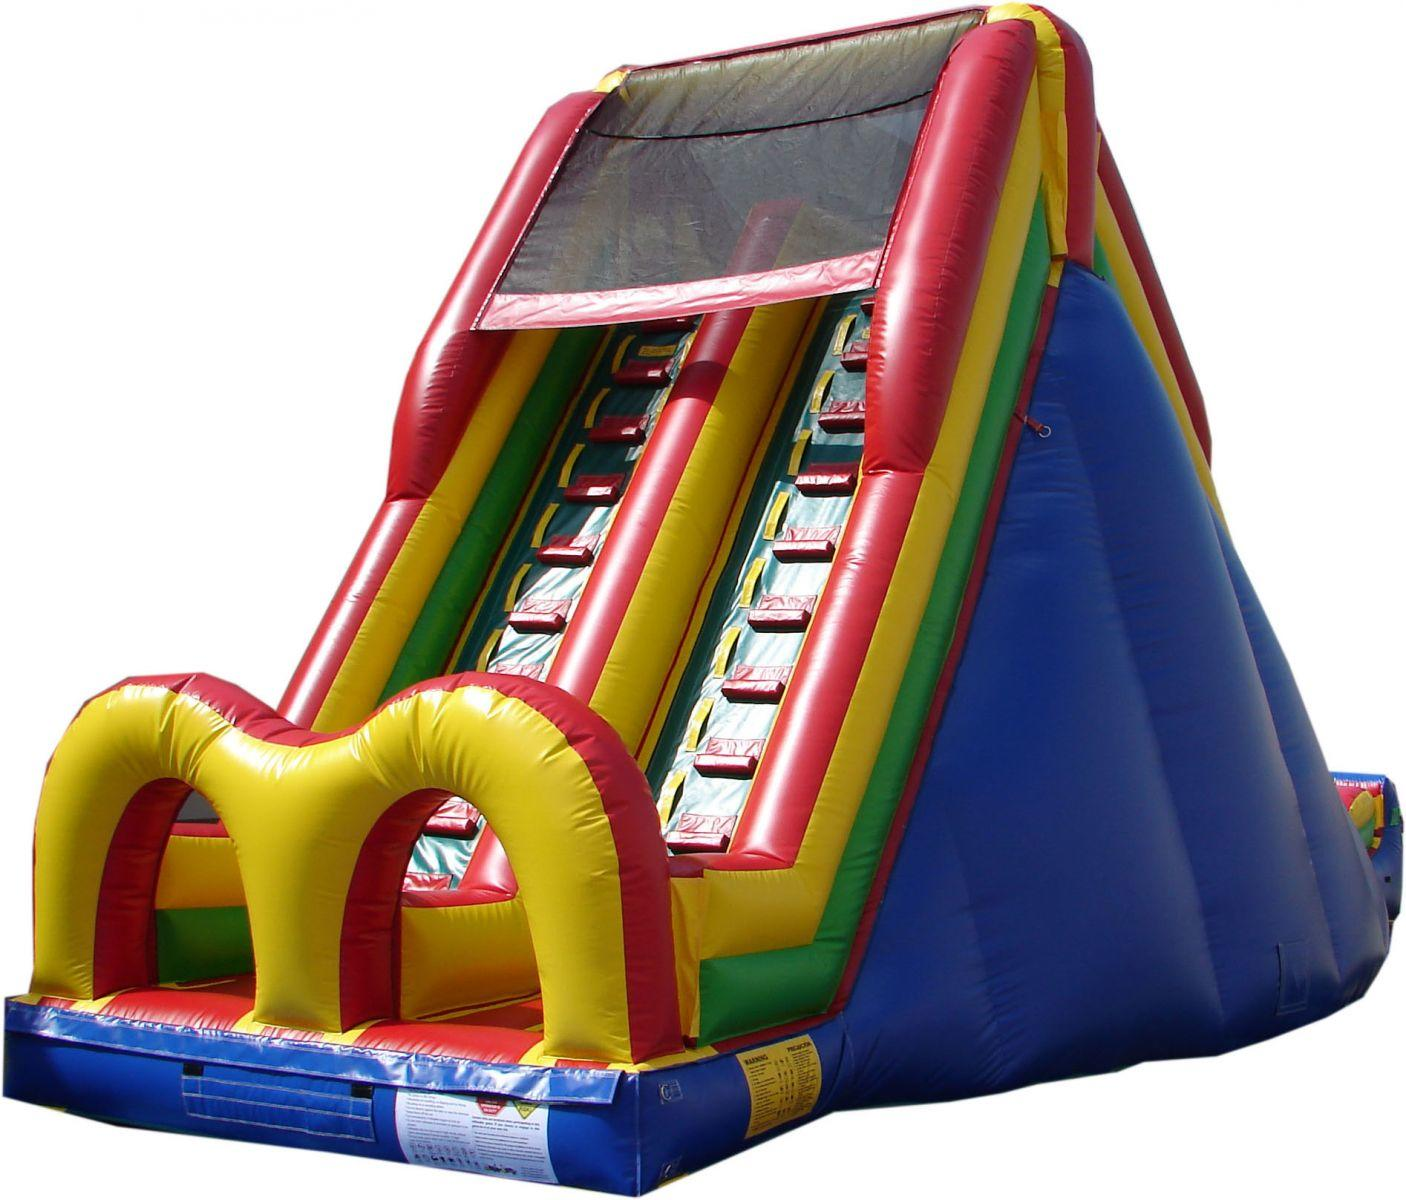 Inflatable Extreme Rush Dry Slide Rental in Chicago IL